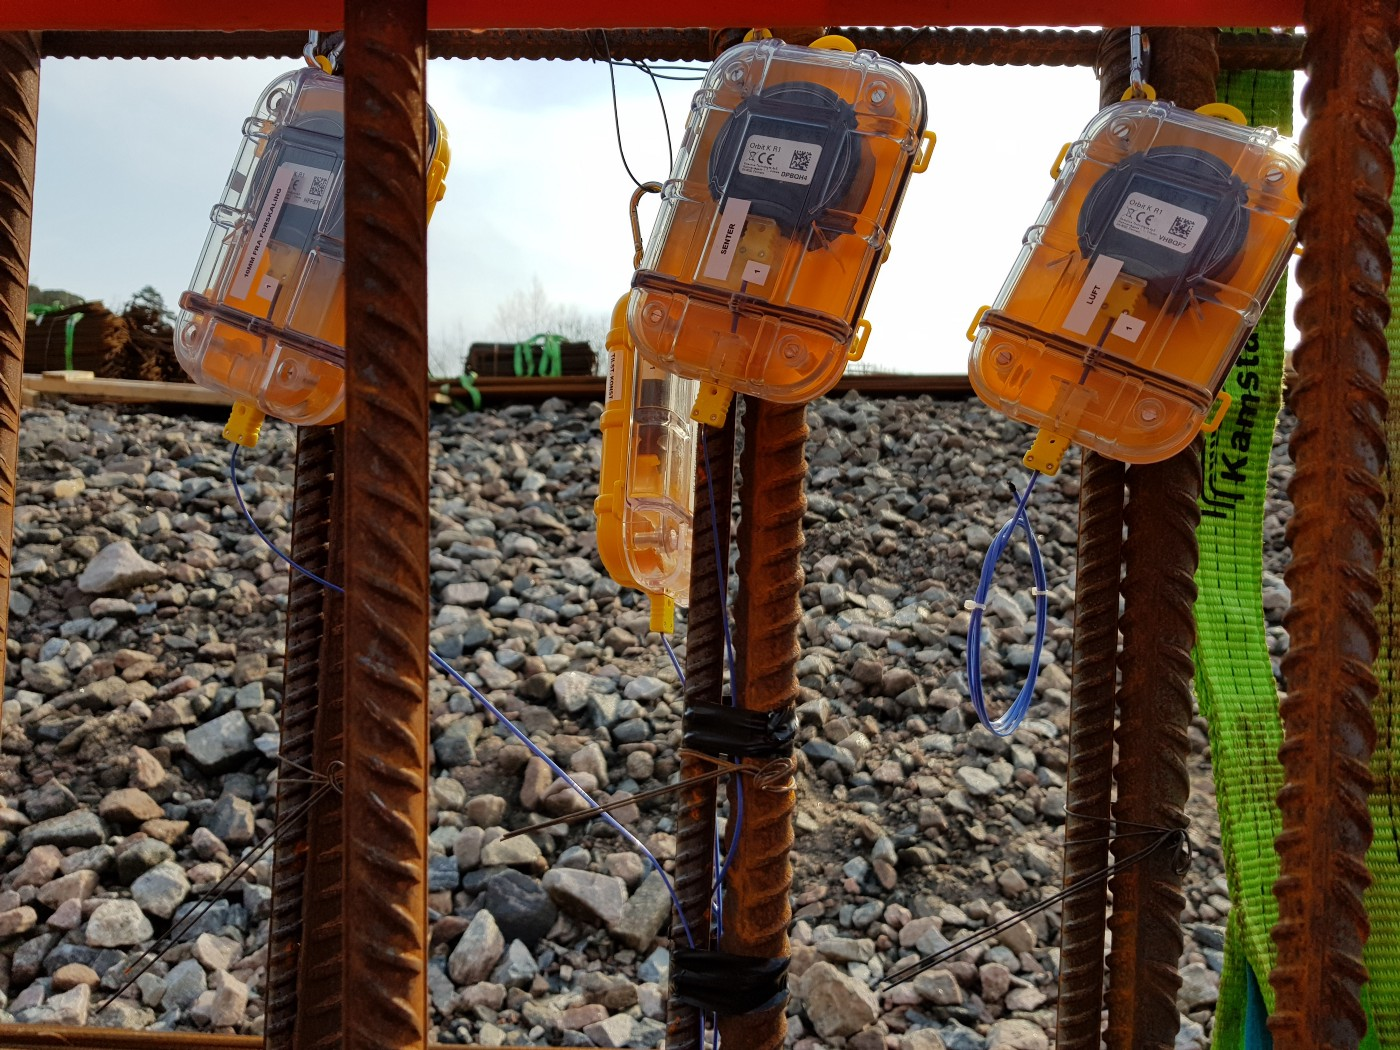 Kruse Smith has attached three Maturix sensors to three separate poles of reinforcing rebar.